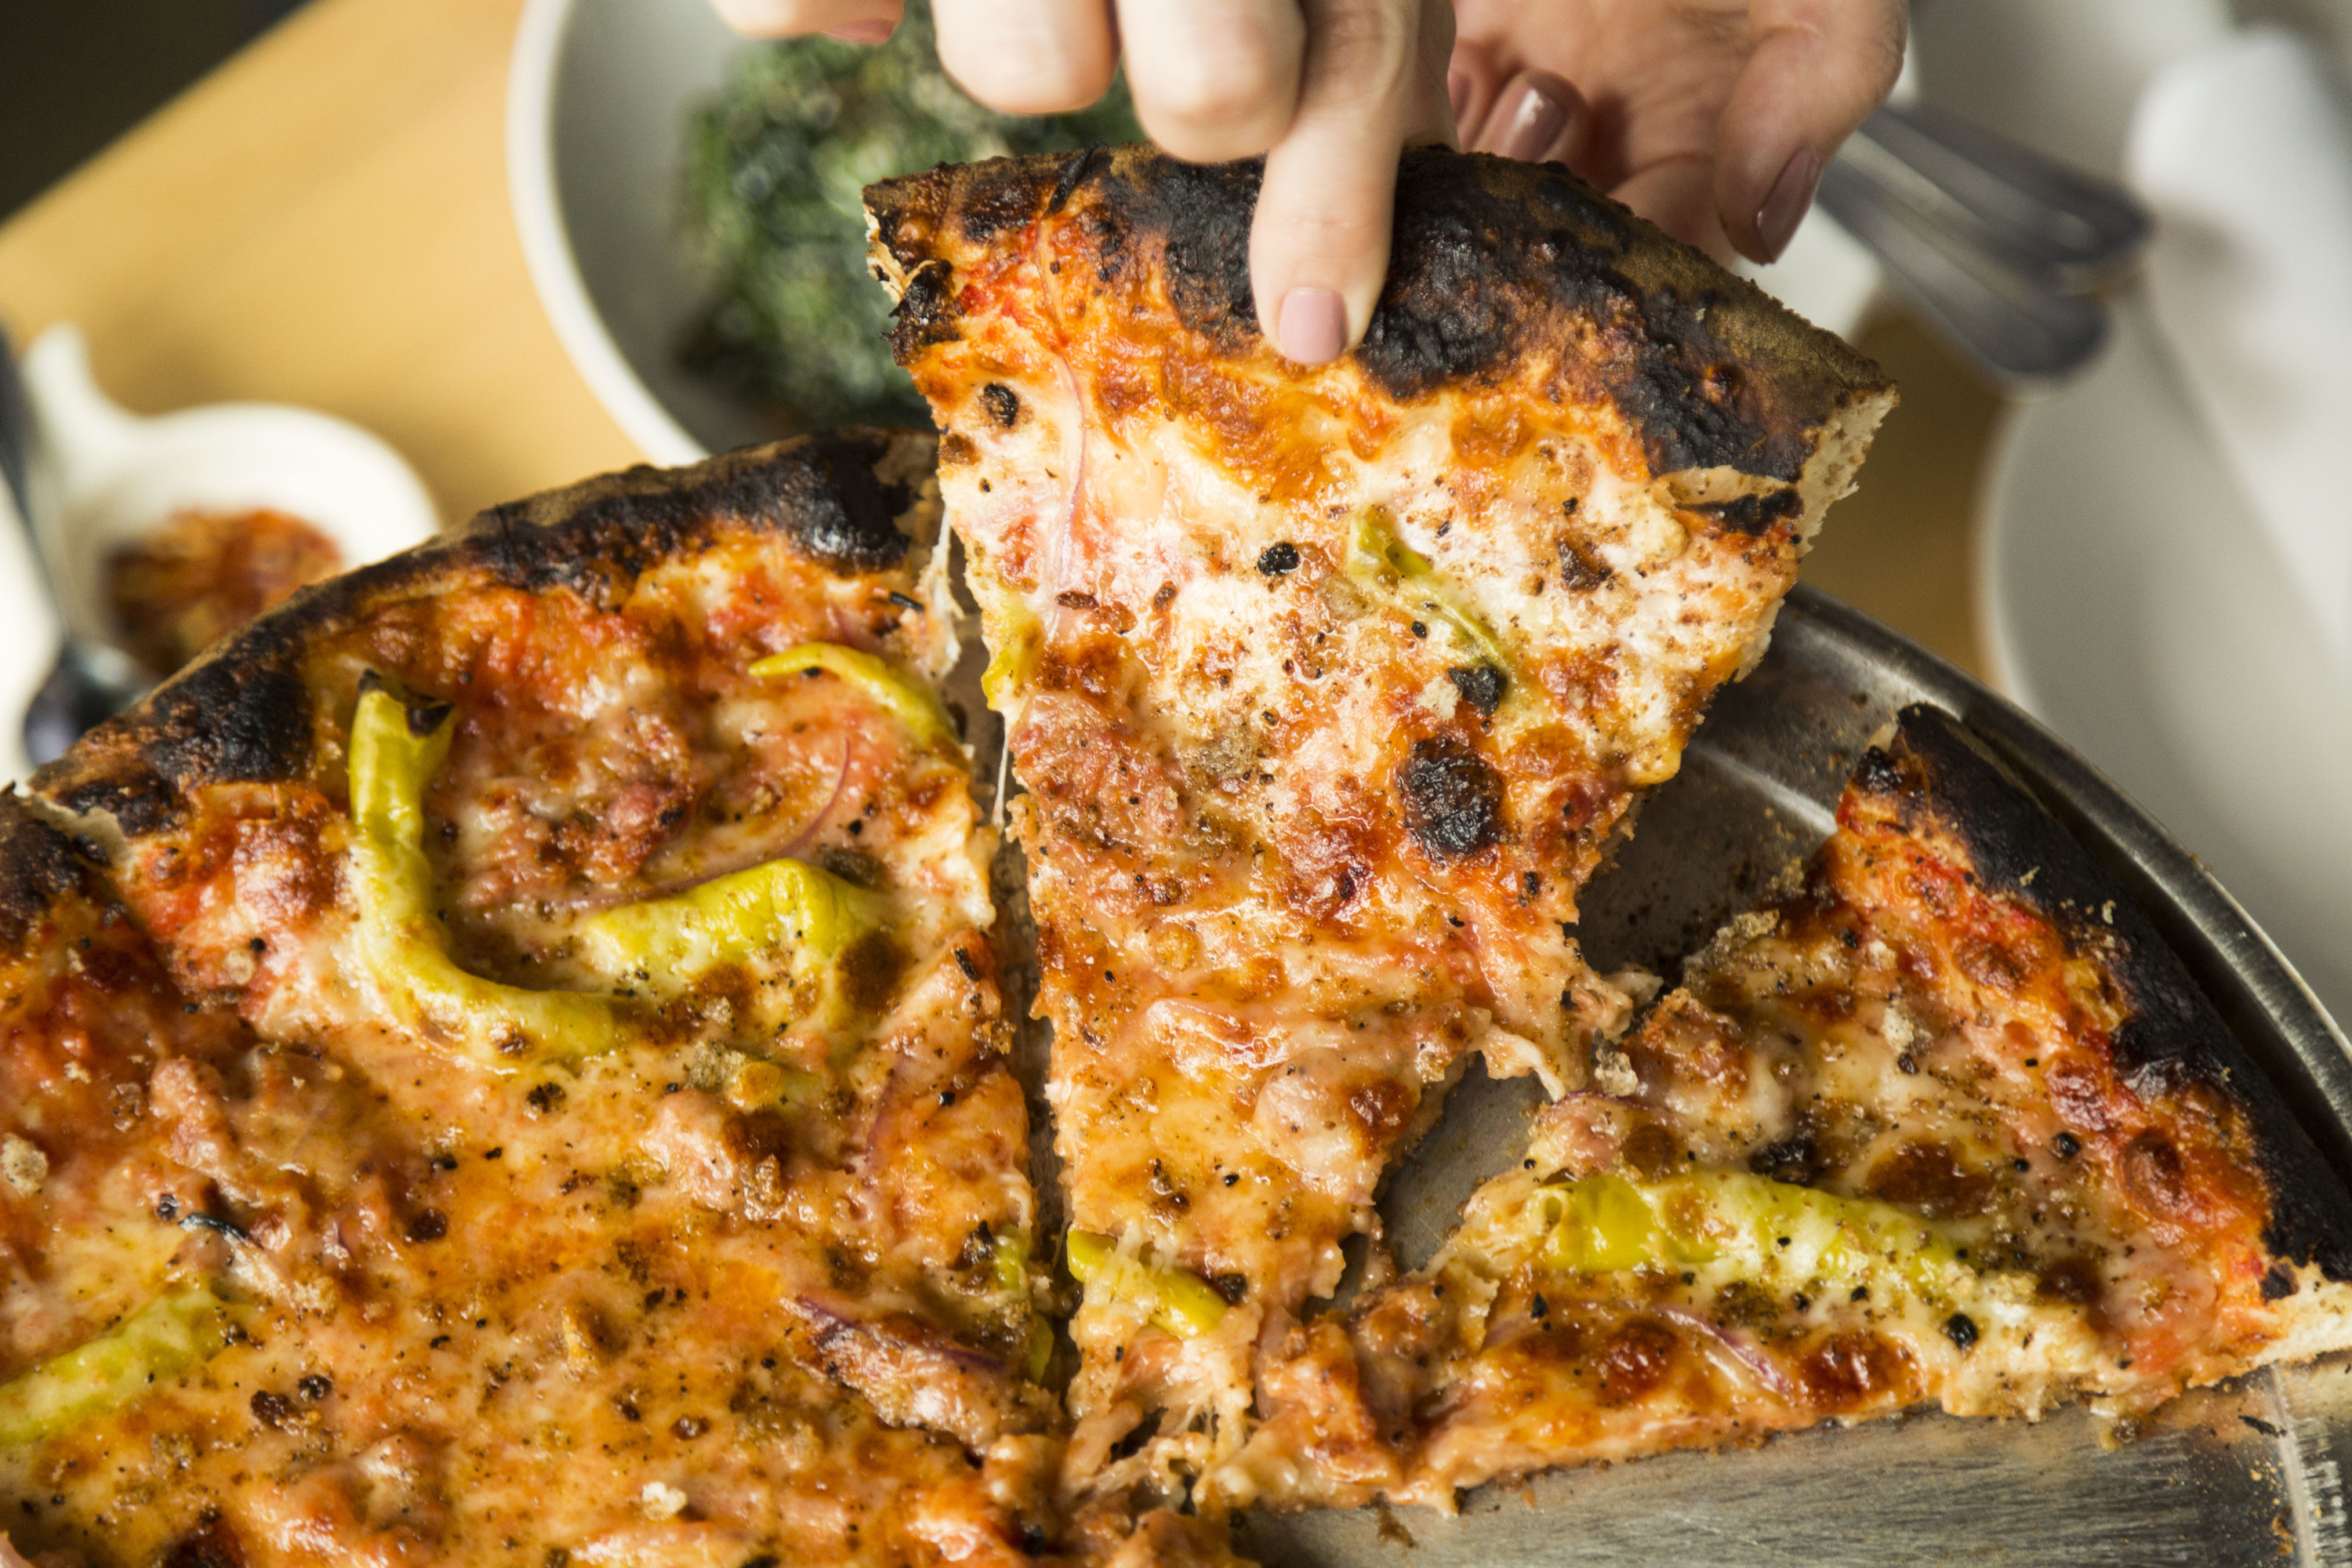 The 18 best pizza joints in Chicago